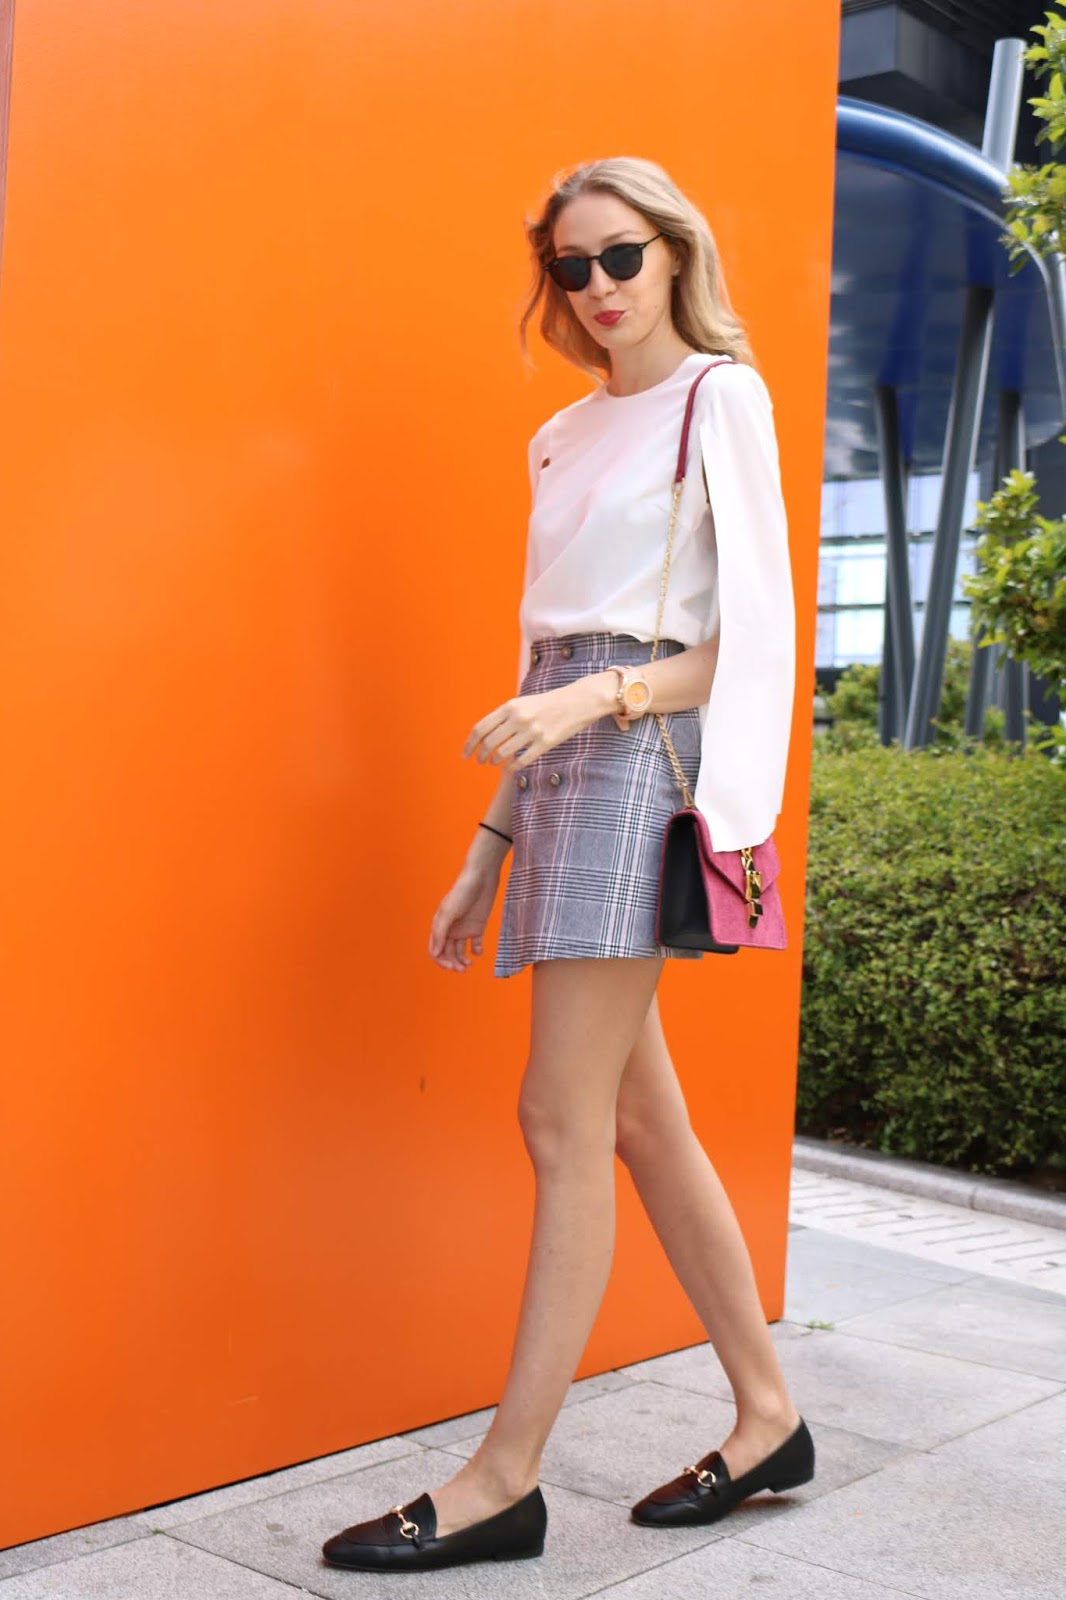 british-skirt-gucci-loafers-marypaz